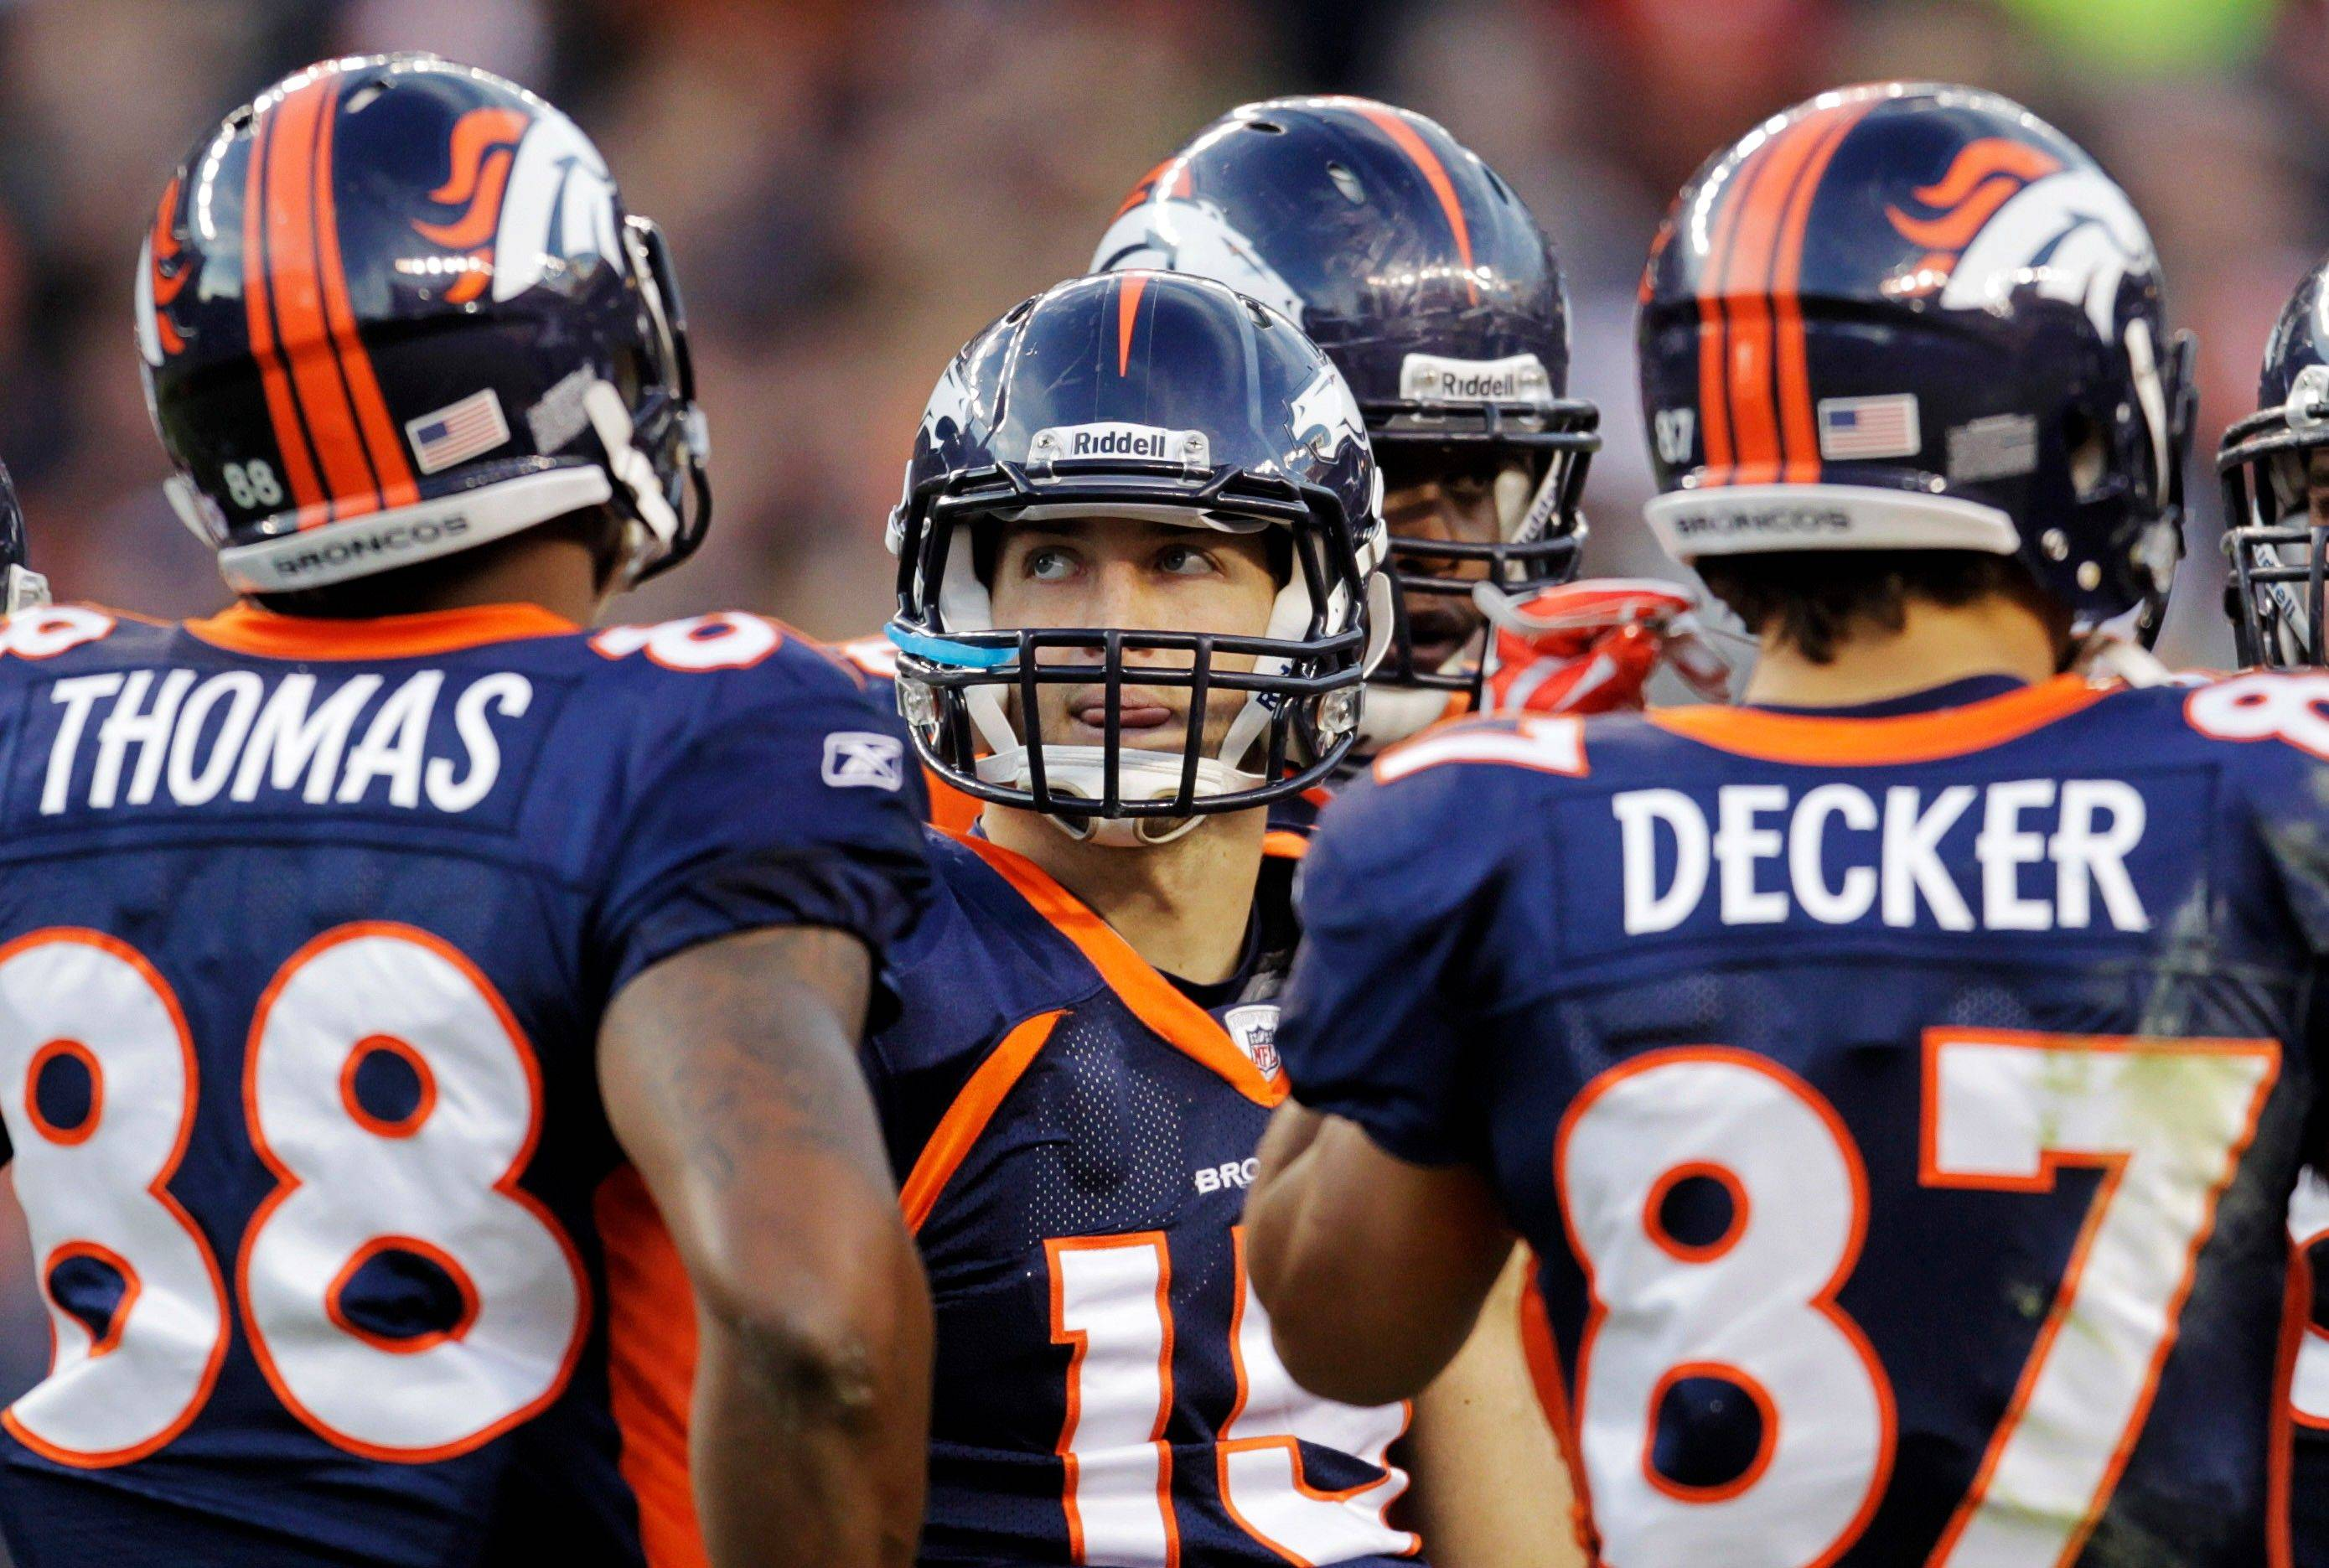 Denver Broncos quarterback Tim Tebow (15) stands in the huddle with wide receiver Demaryius Thomas (88) and wide receiver Eric Decker (87) after a touchdown by the Chicago Bears in the third quarter.